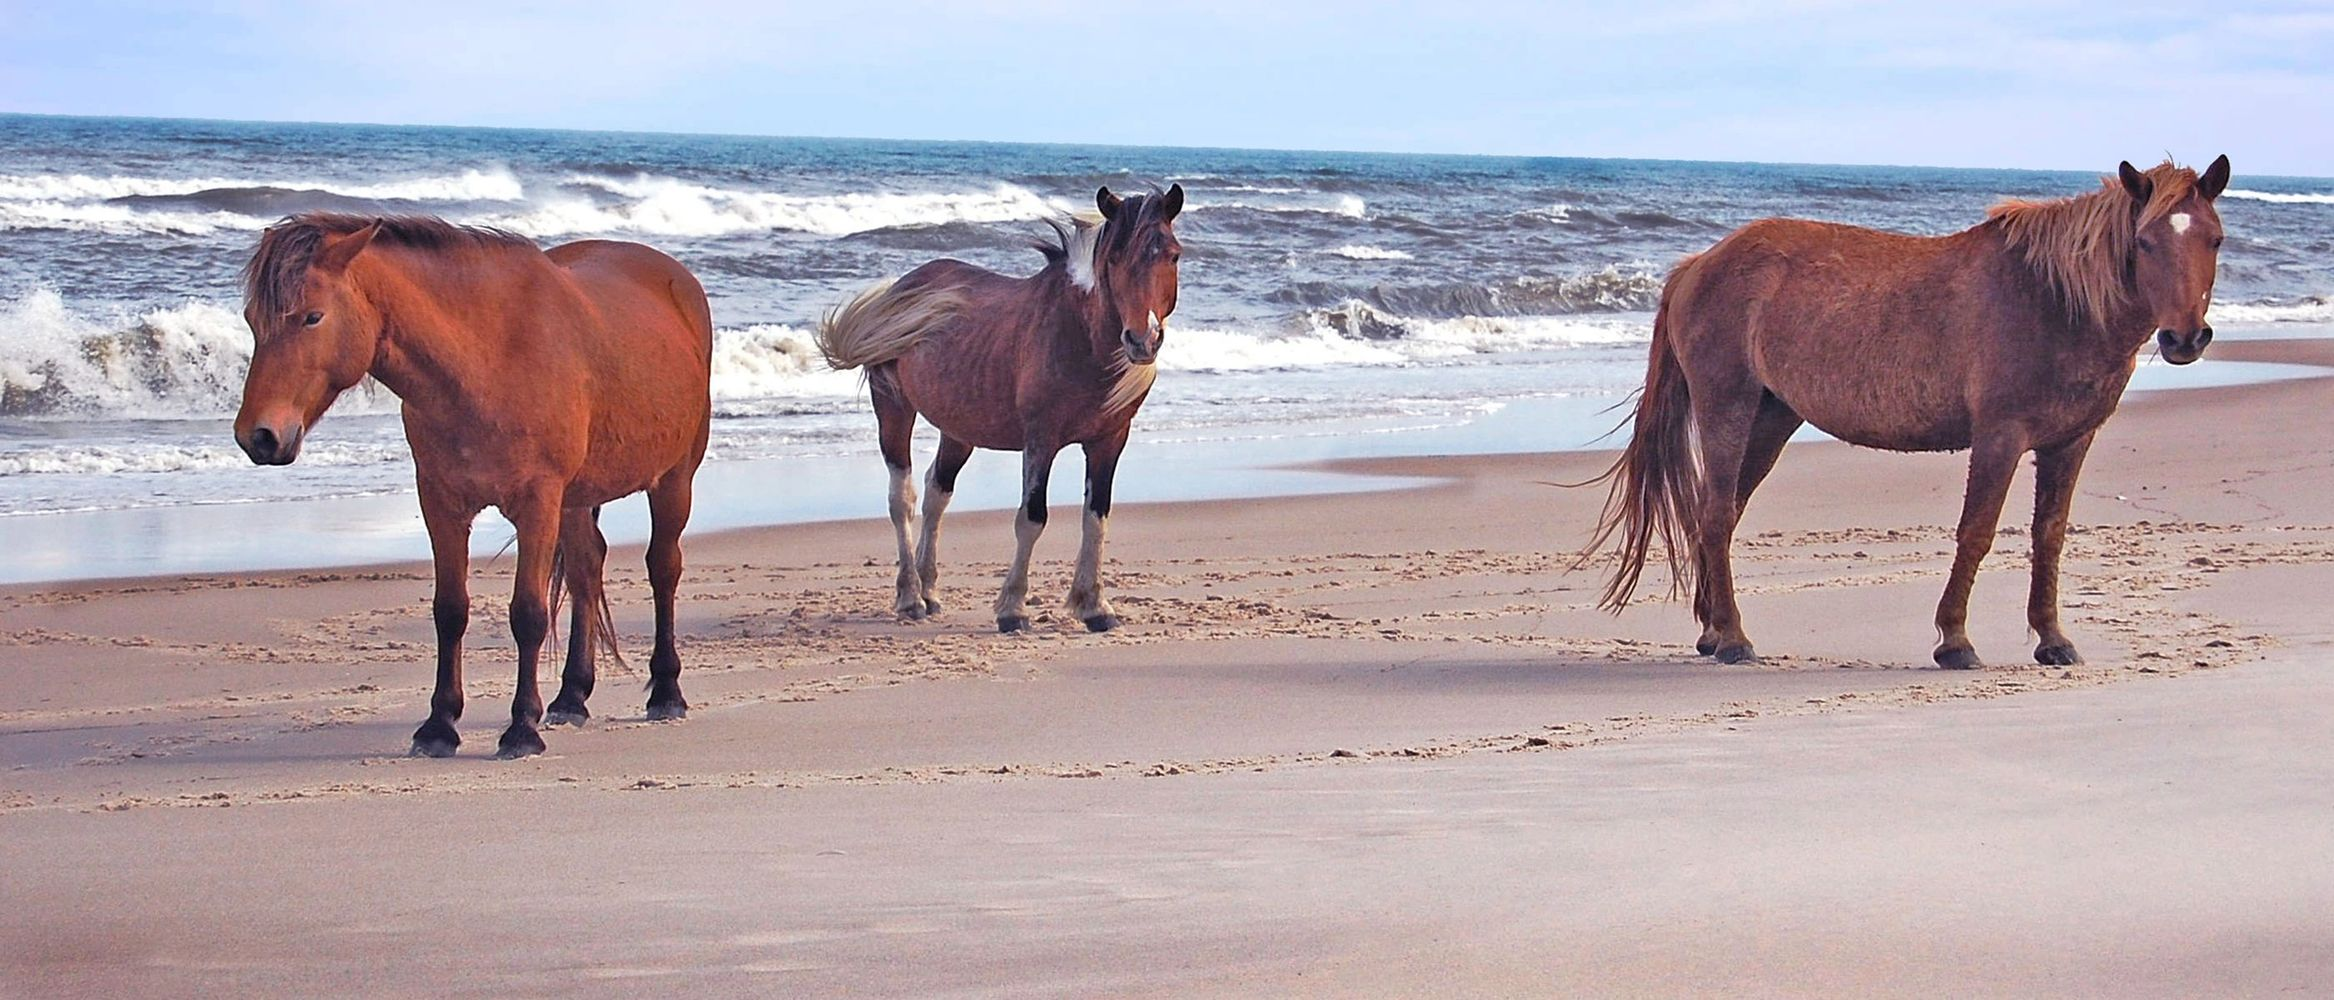 Wild Horses of Assateague Island, Maryland.